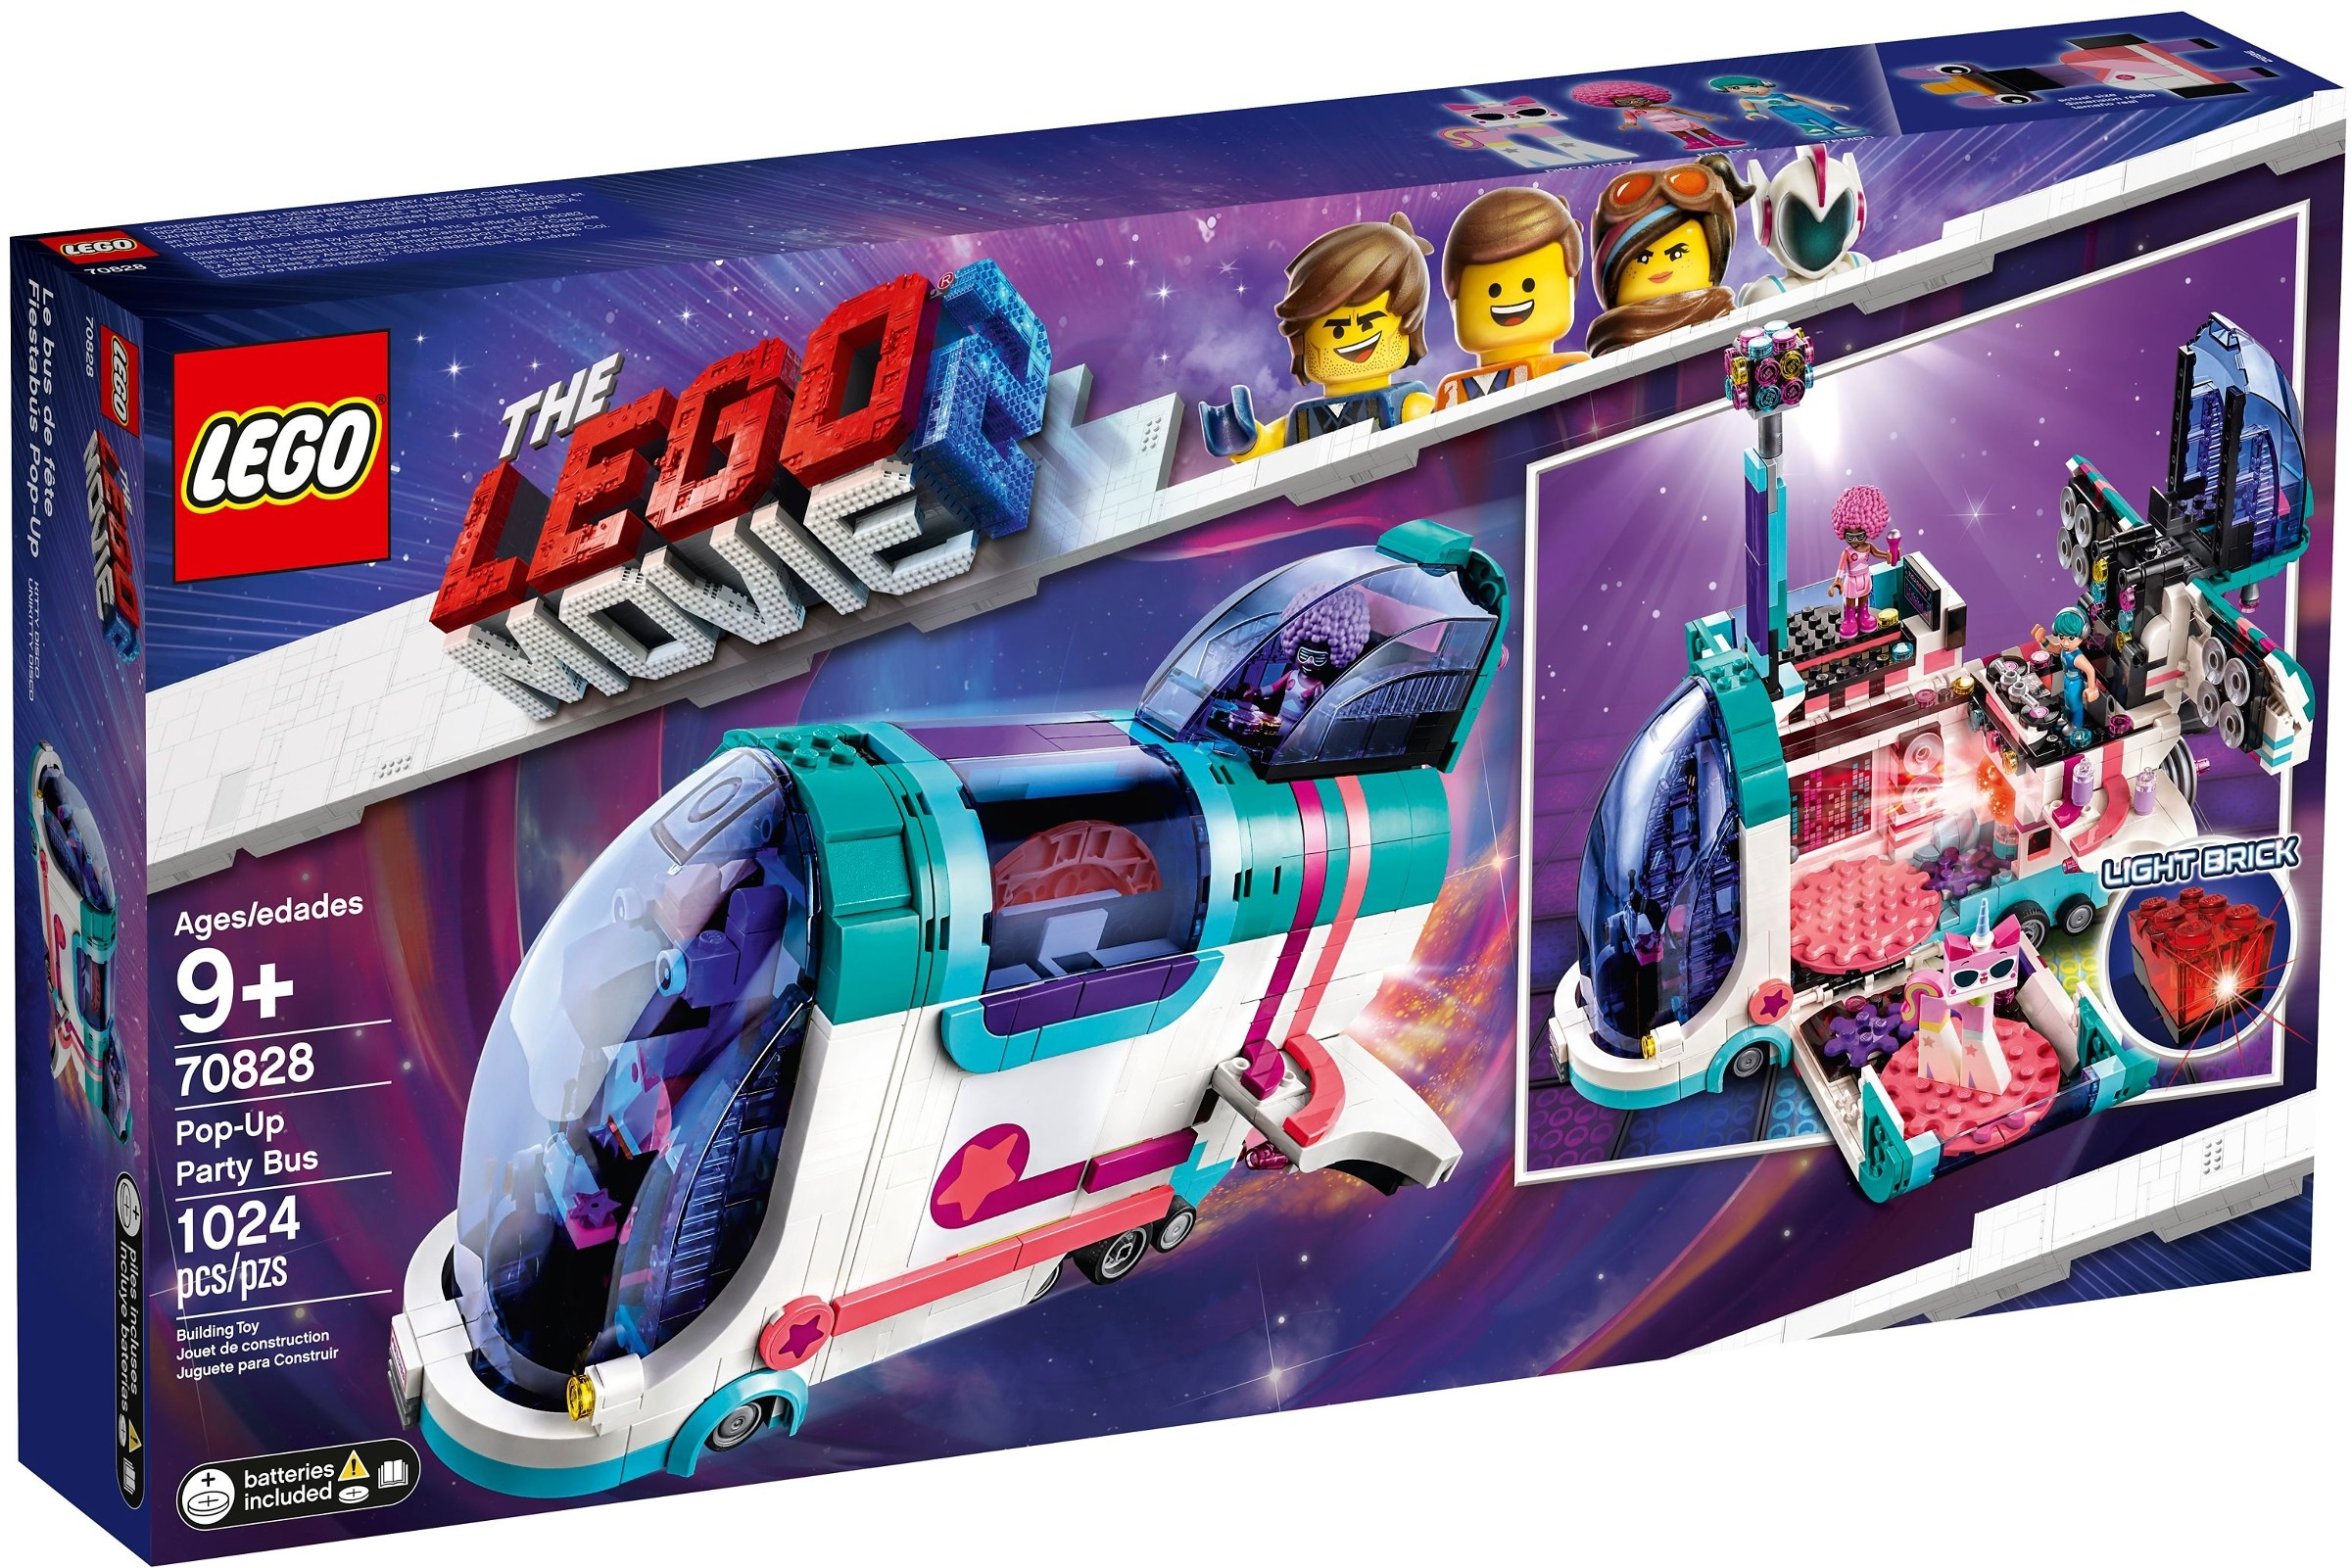 Lego Movie Pop -up Party Bus Lm2 Offer